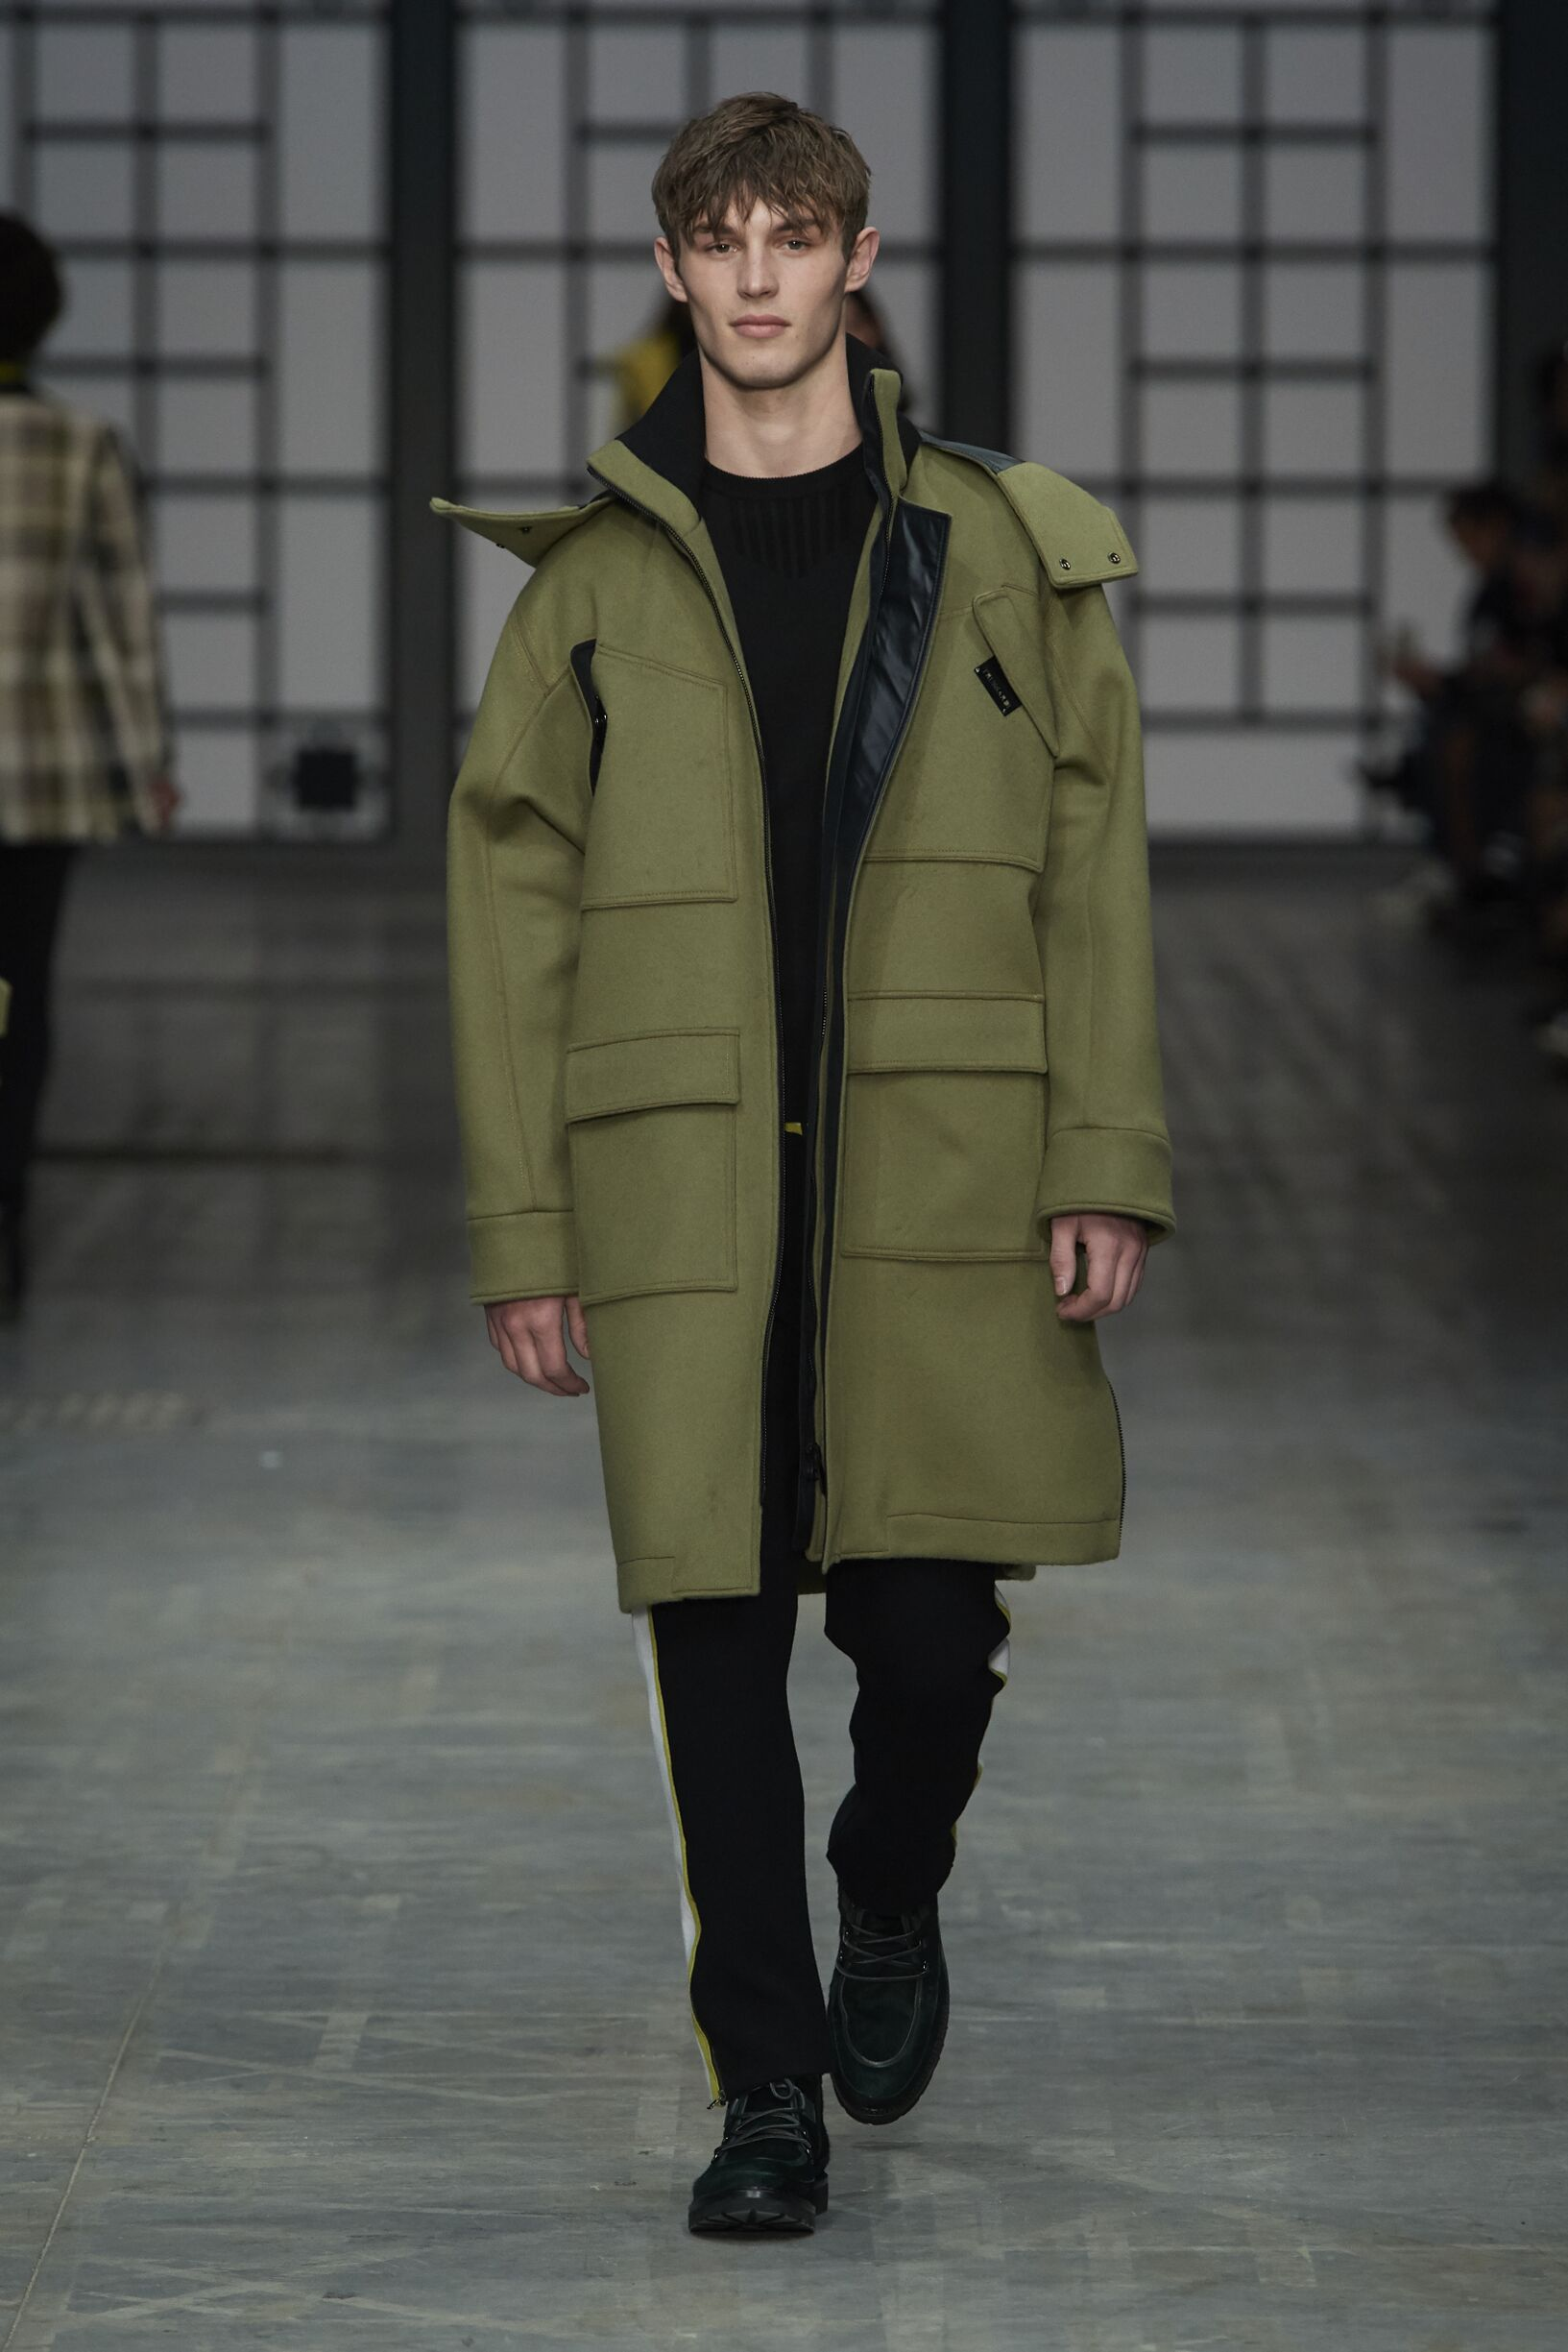 Man FW 2018-19 Fashion Show Trussardi